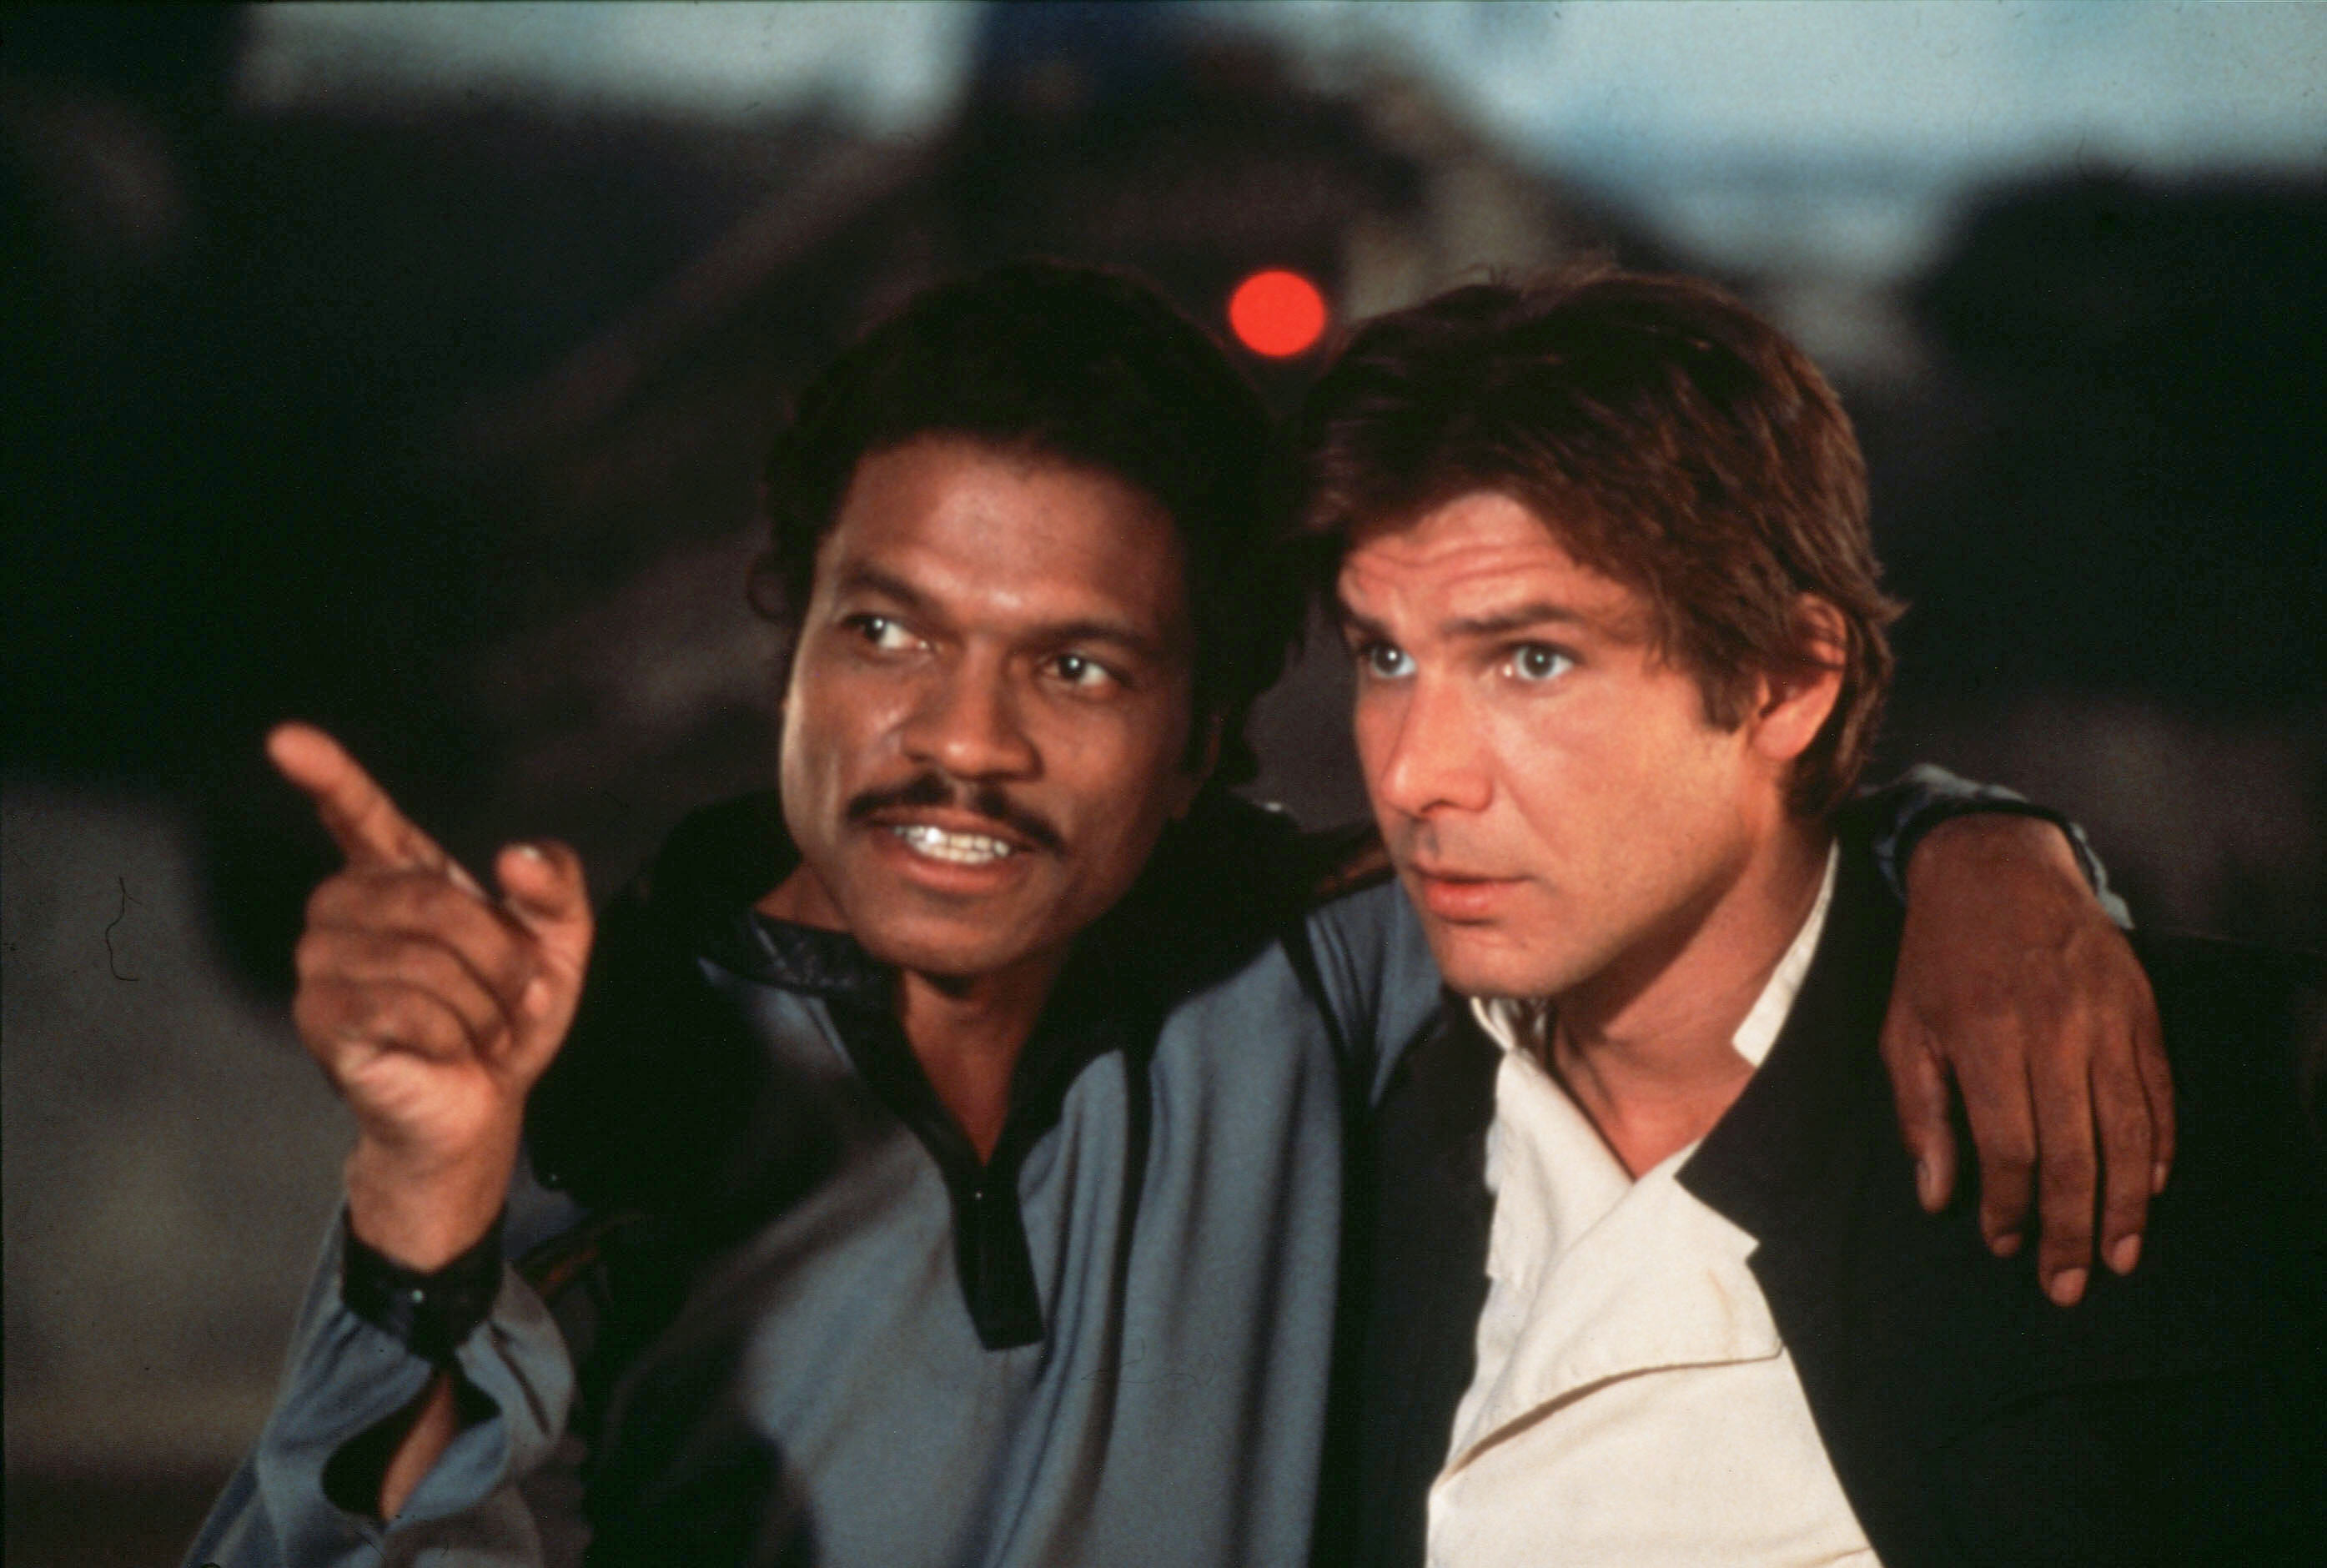 'Star Wars': Billy Dee Williams to Reprise Lando Calrissian Role in 'Episode IX'